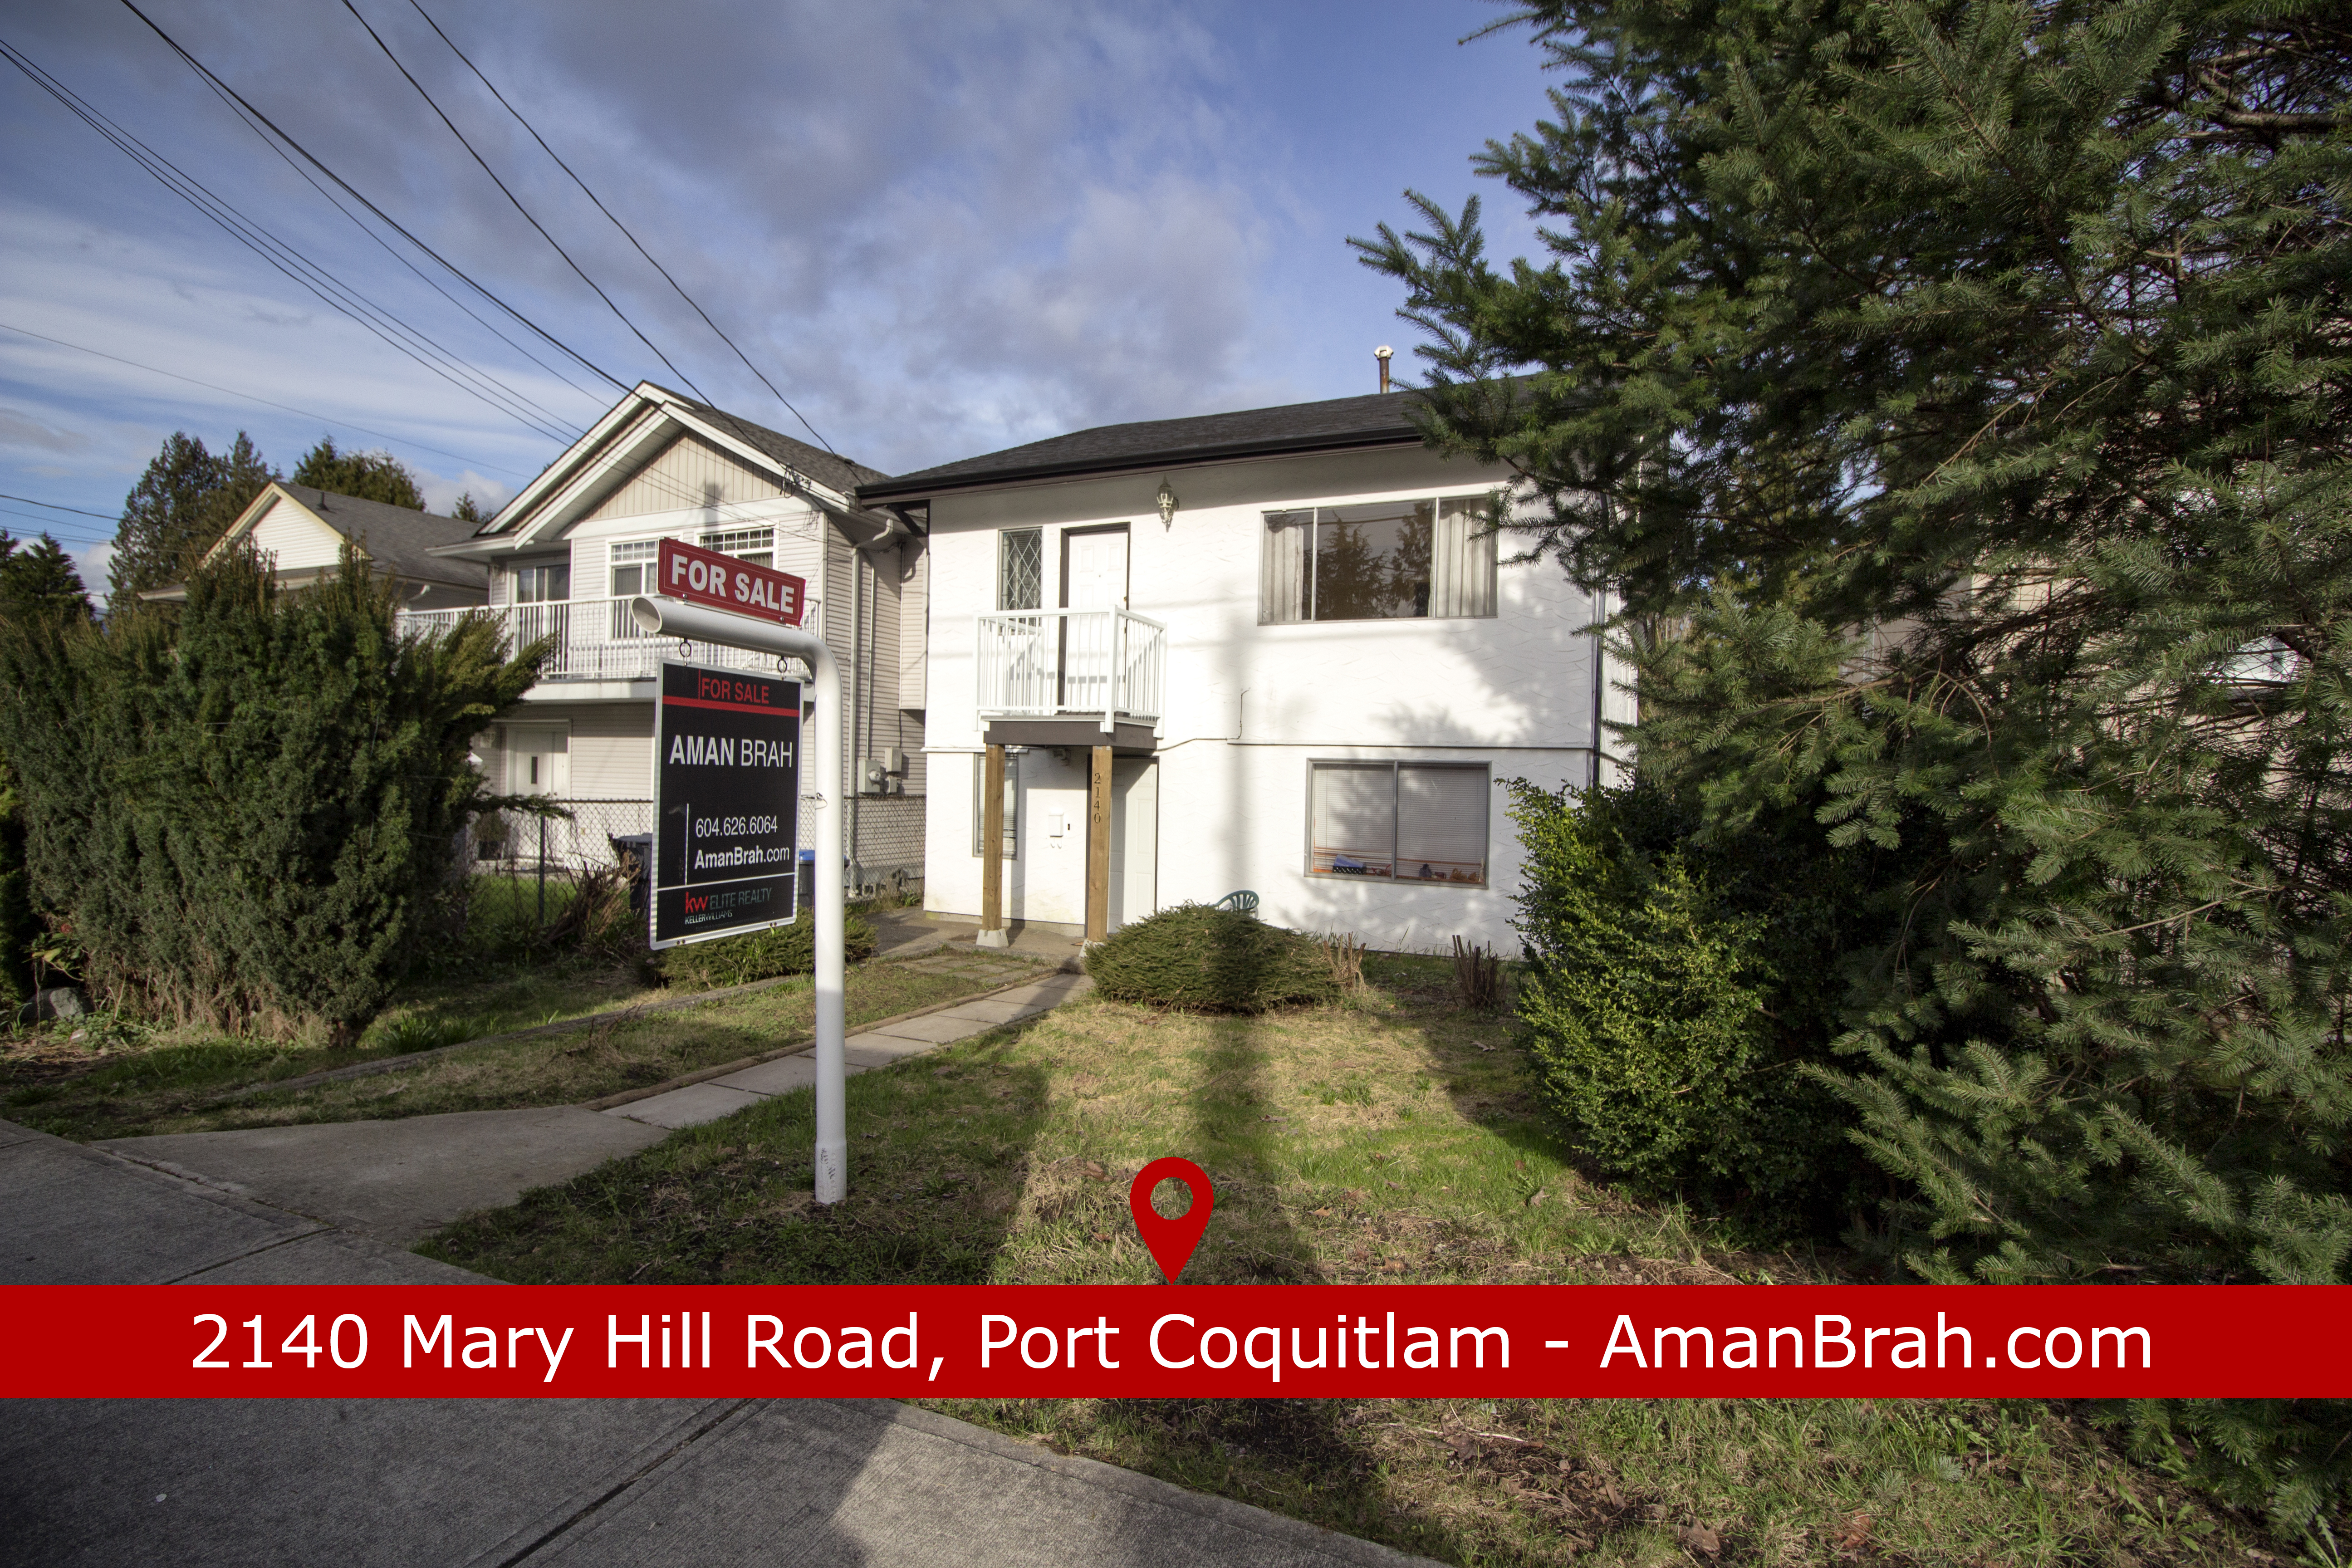 2140 Mary Hill Road, Port Coquitlam – Central Port Coquitlam